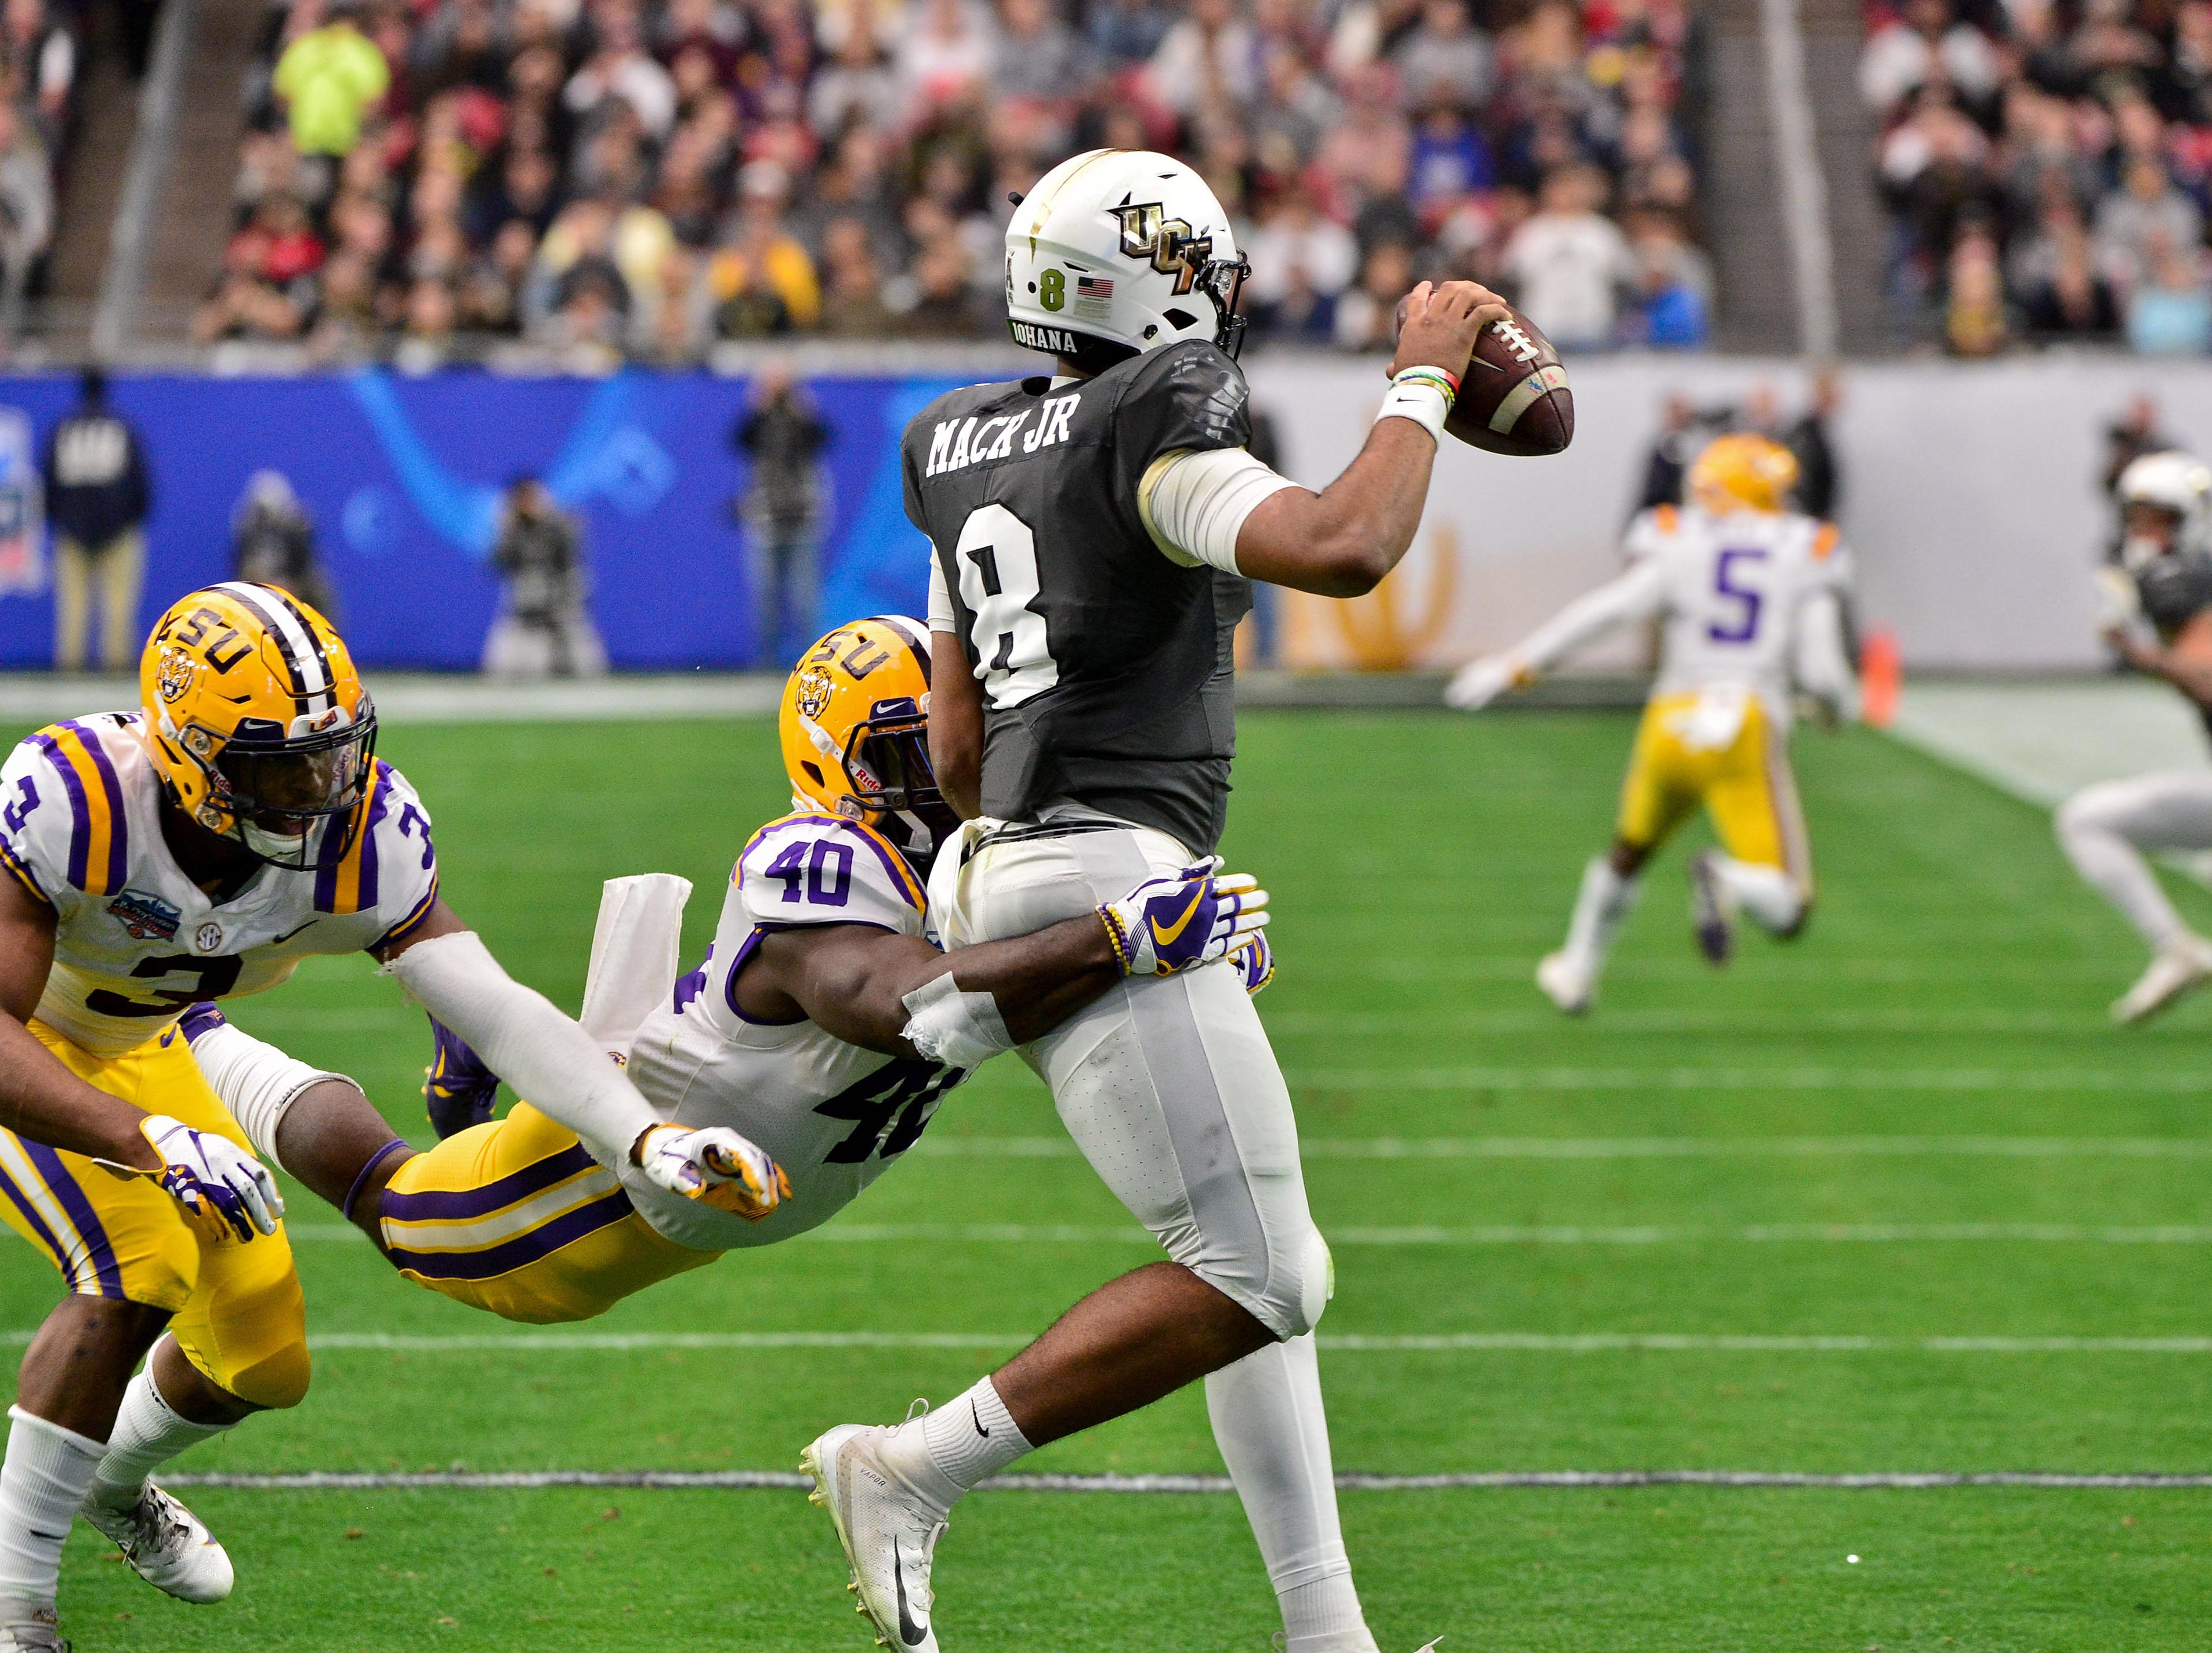 LSU Tigers linebacker Devin White (40) tackles UCF Knights quarterback Darriel Mack Jr. (8) during the first half in  the 2019 Fiesta Bowl at State Farm Stadium.